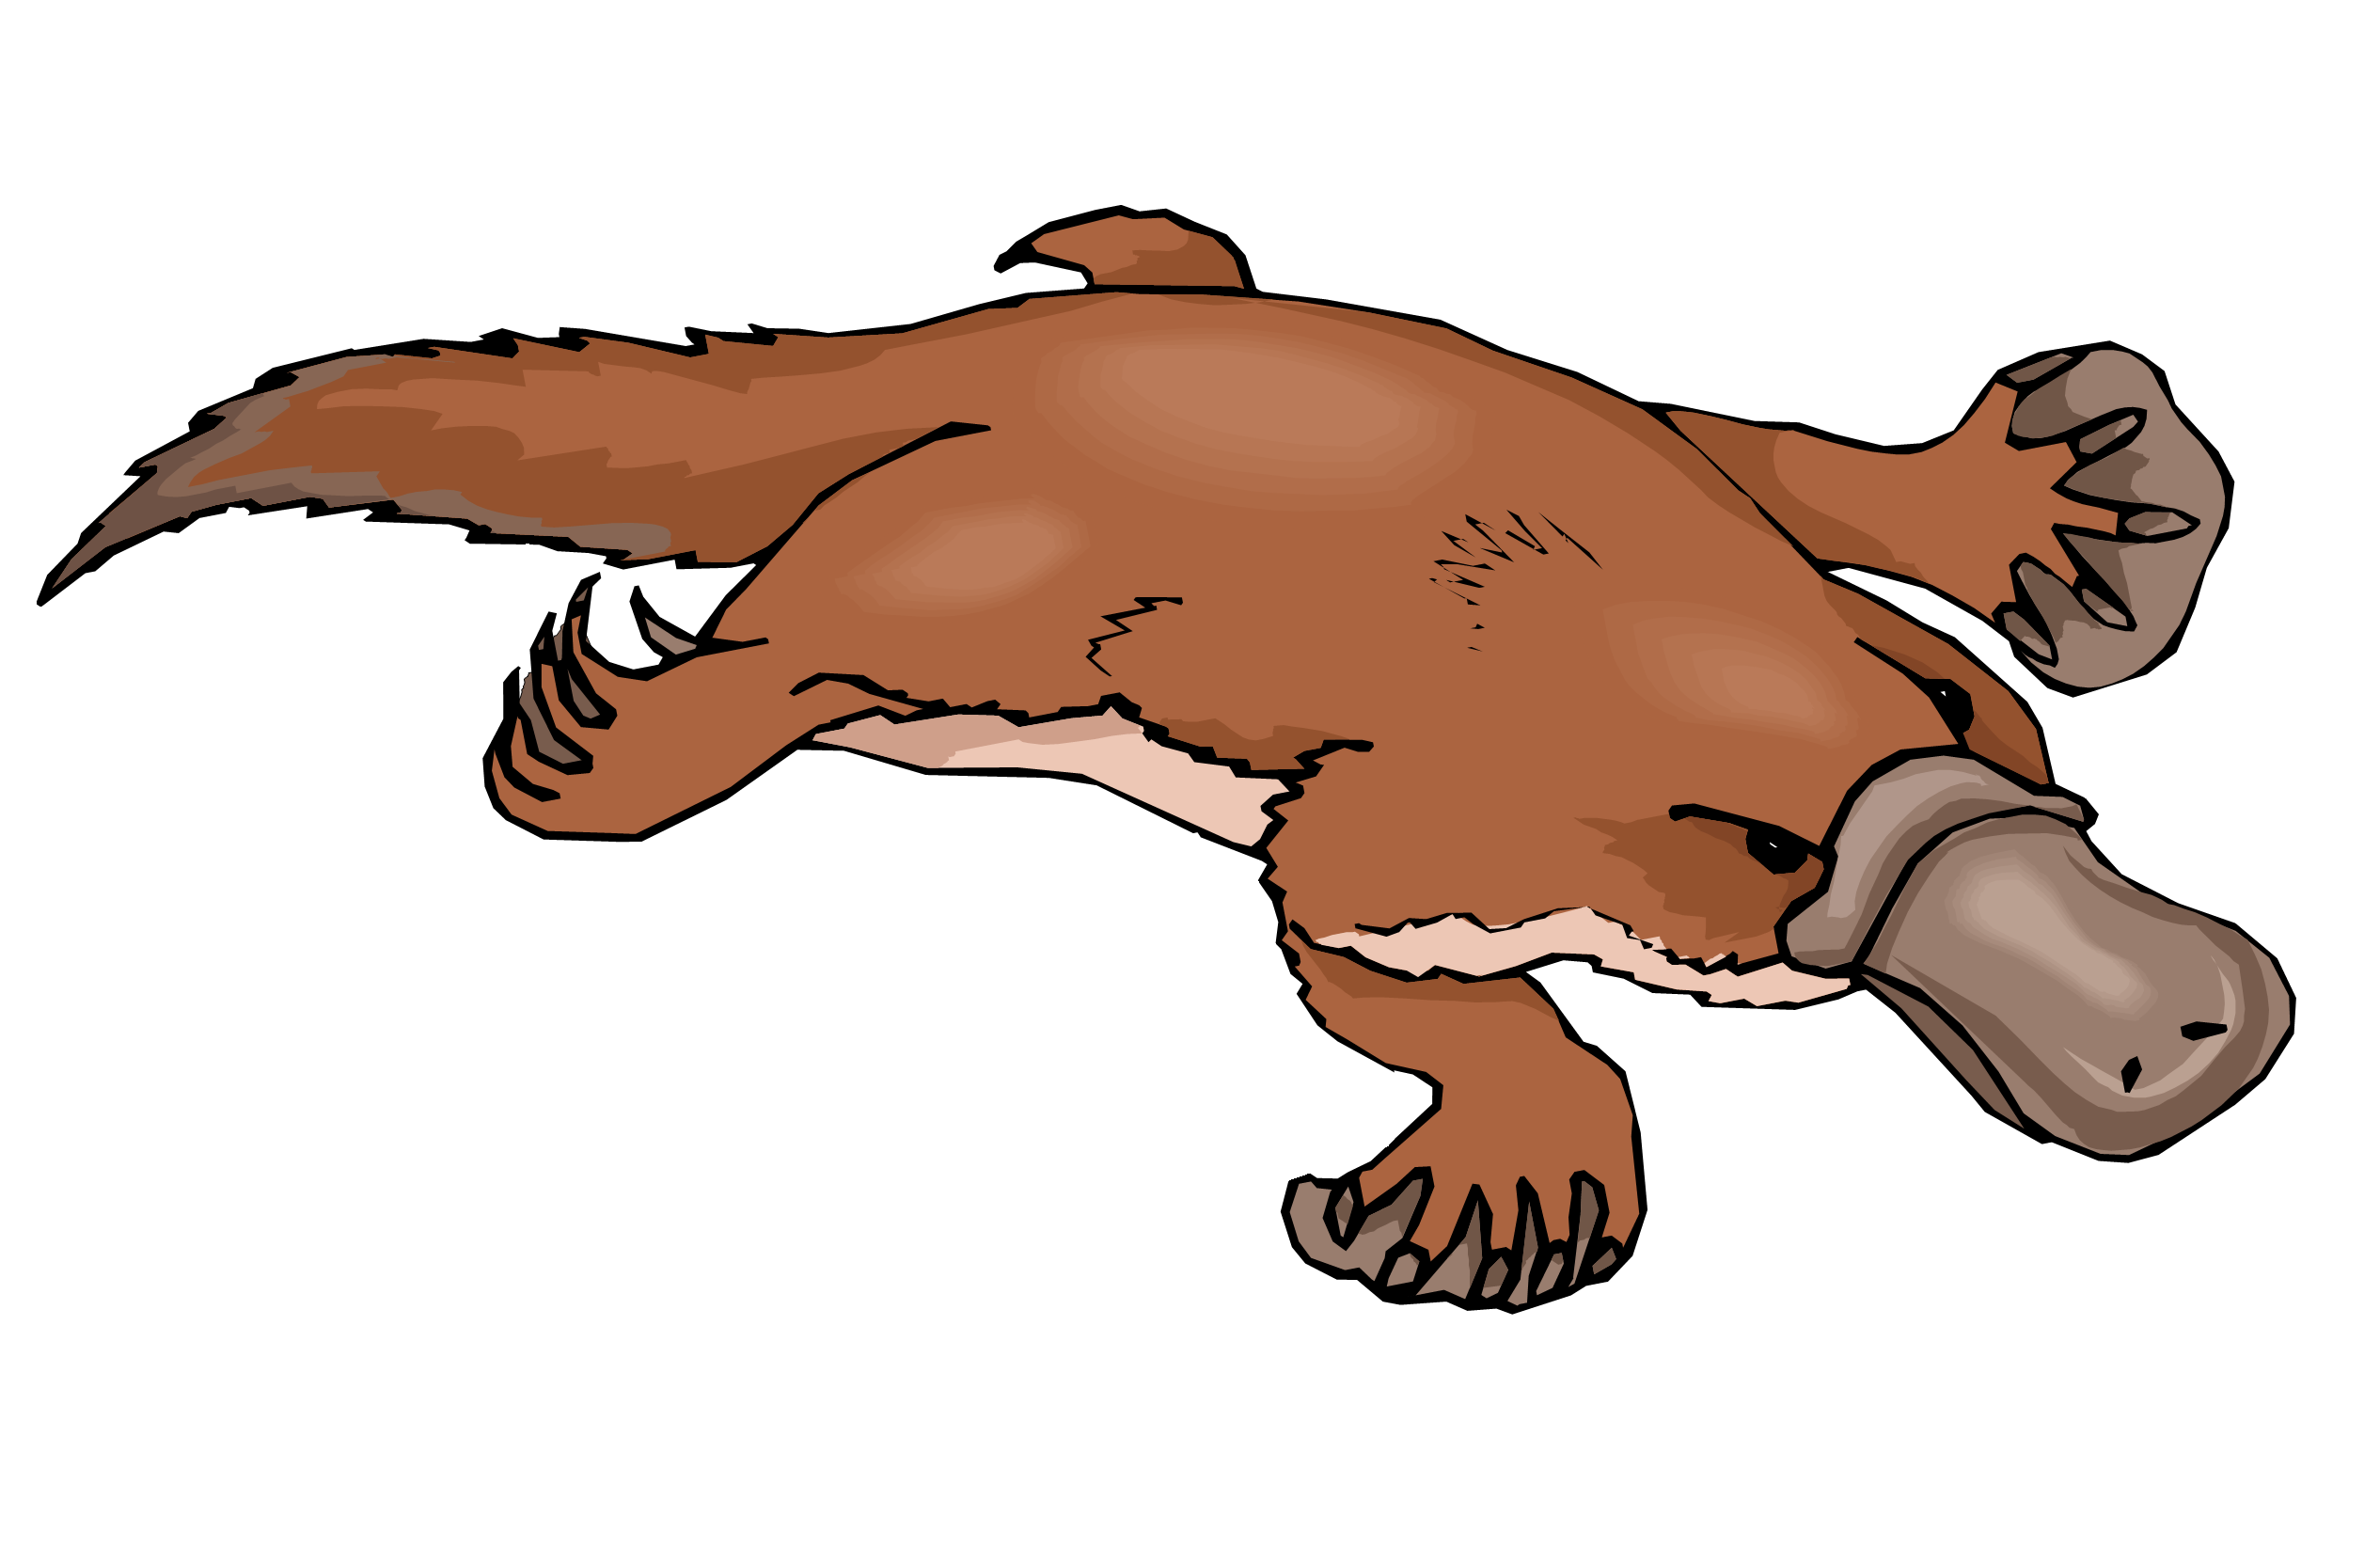 Platypus clipart #5, Download drawings